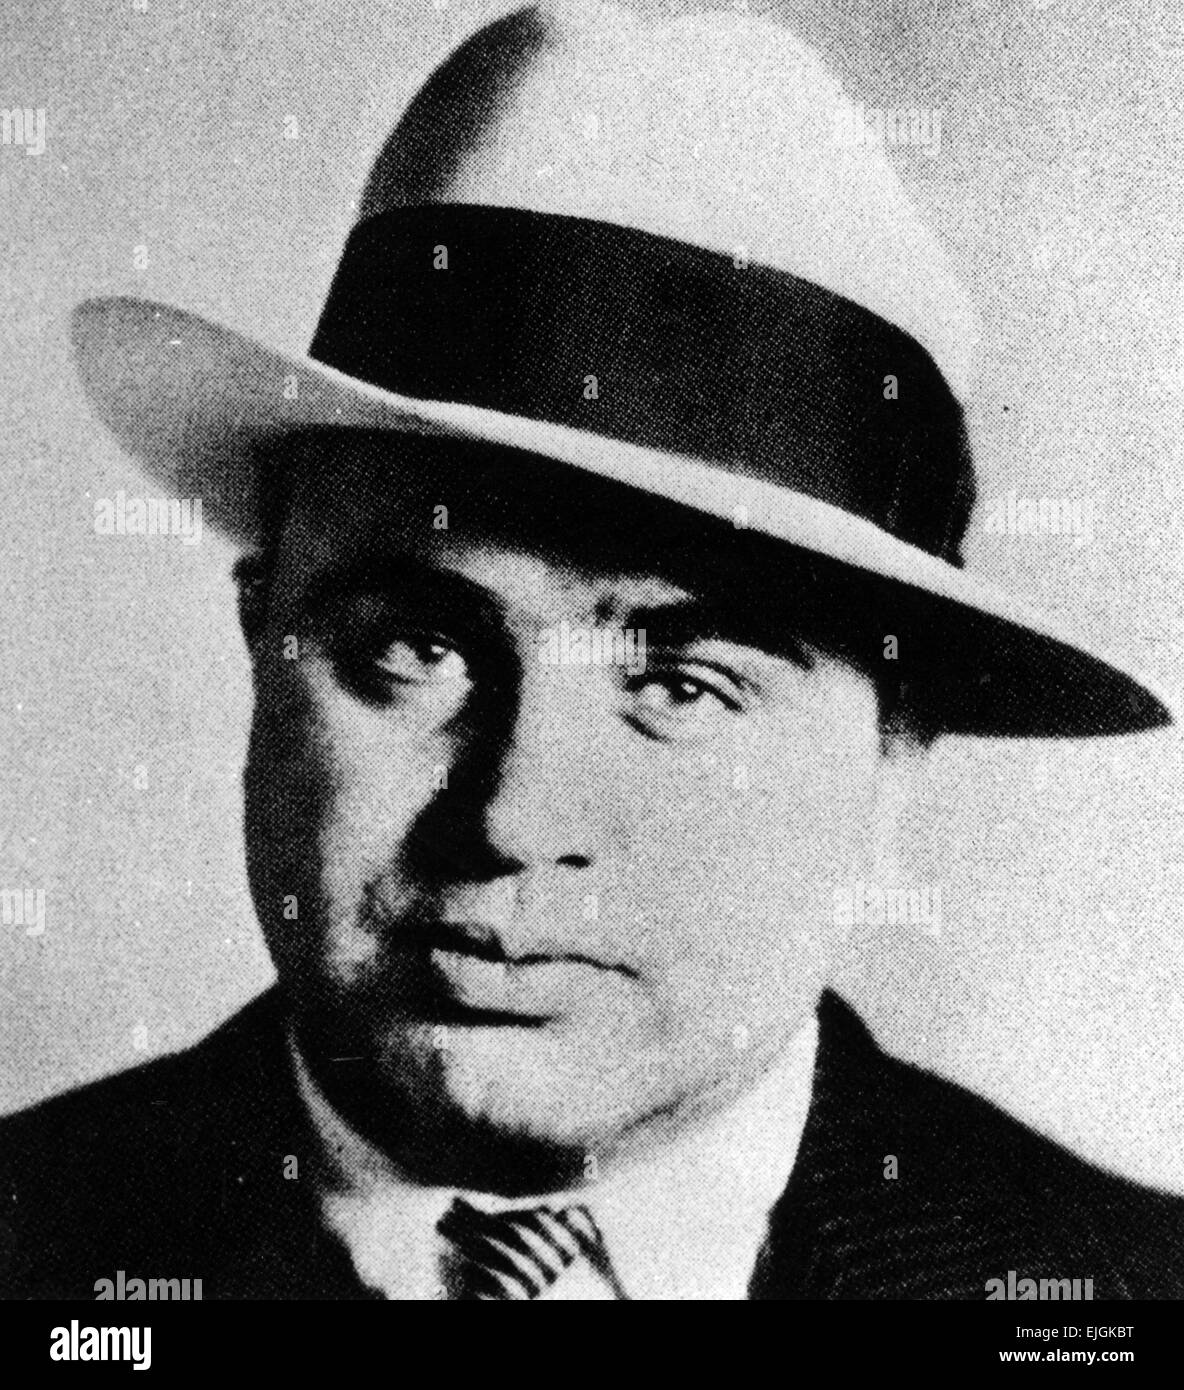 a description of al capone as americas best known gangster Al capone was one of the most notorious gangsters in american history he was the leader of an organized crime gang in chicago in the 1920s during the prohibition era  he became famous for both his criminal activity as well as his donations to charity.